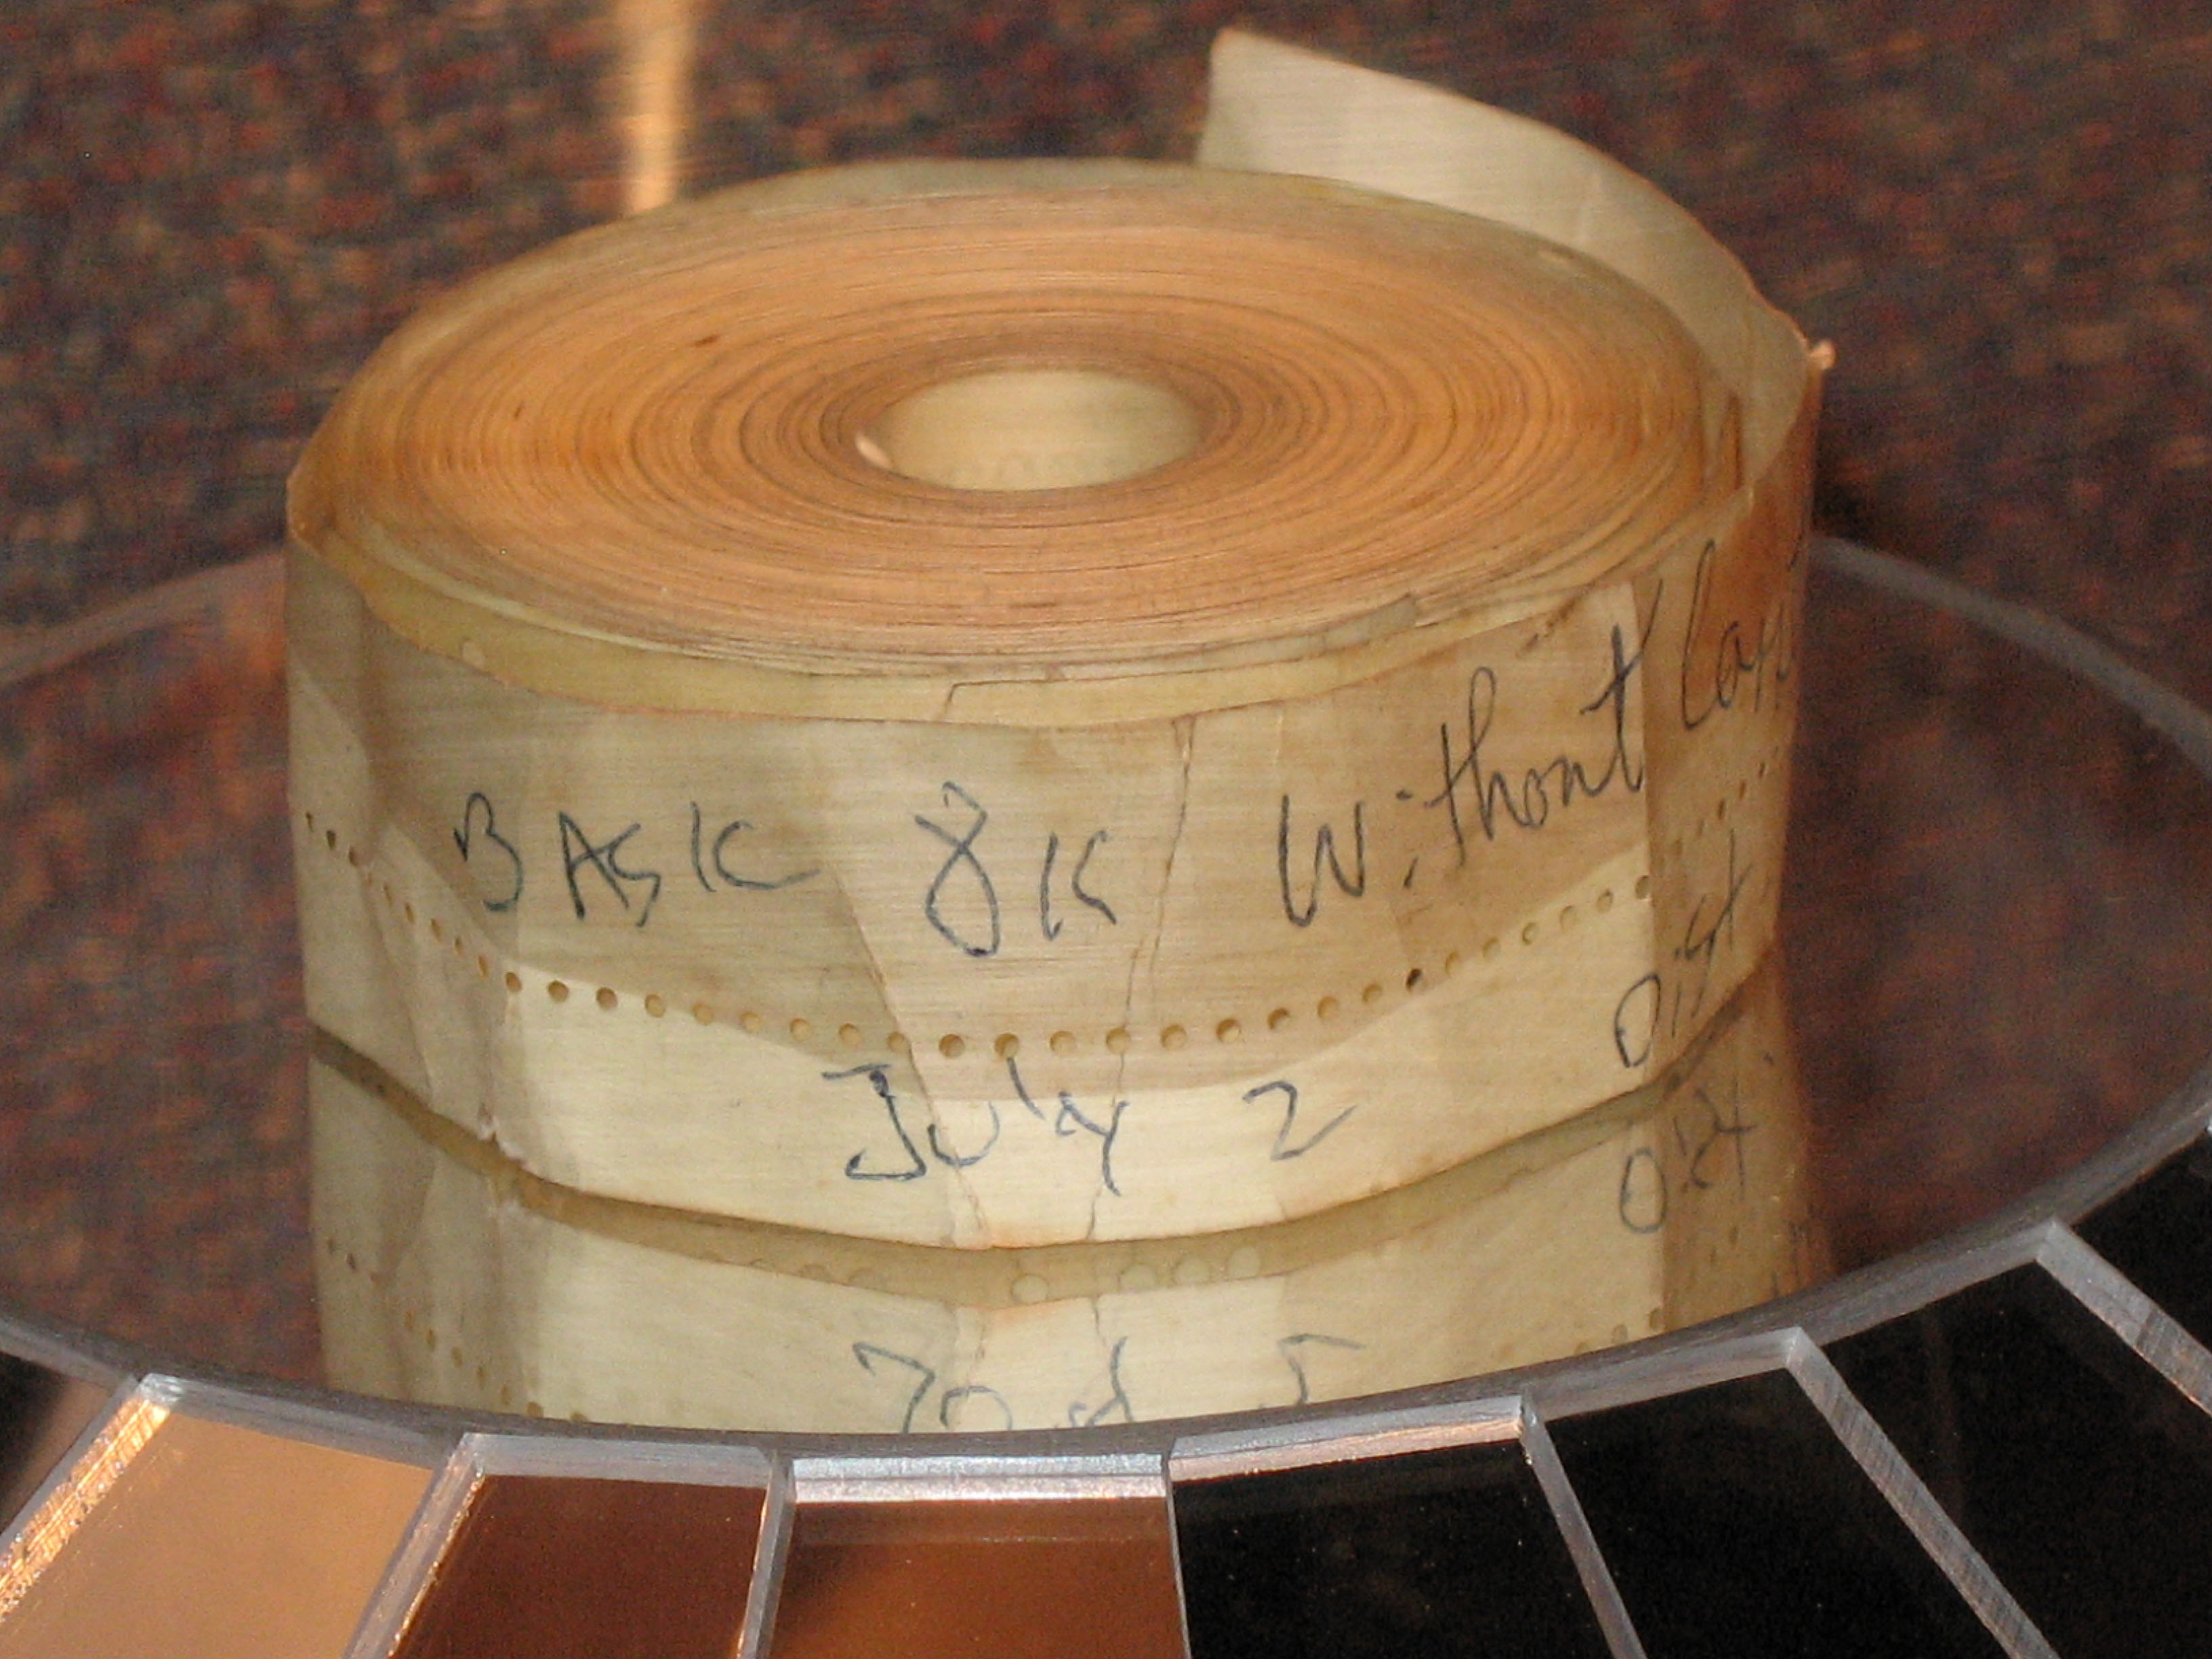 http://upload.wikimedia.org/wikipedia/commons/9/9a/Altair_BASIC_Paper_Tape.jpg